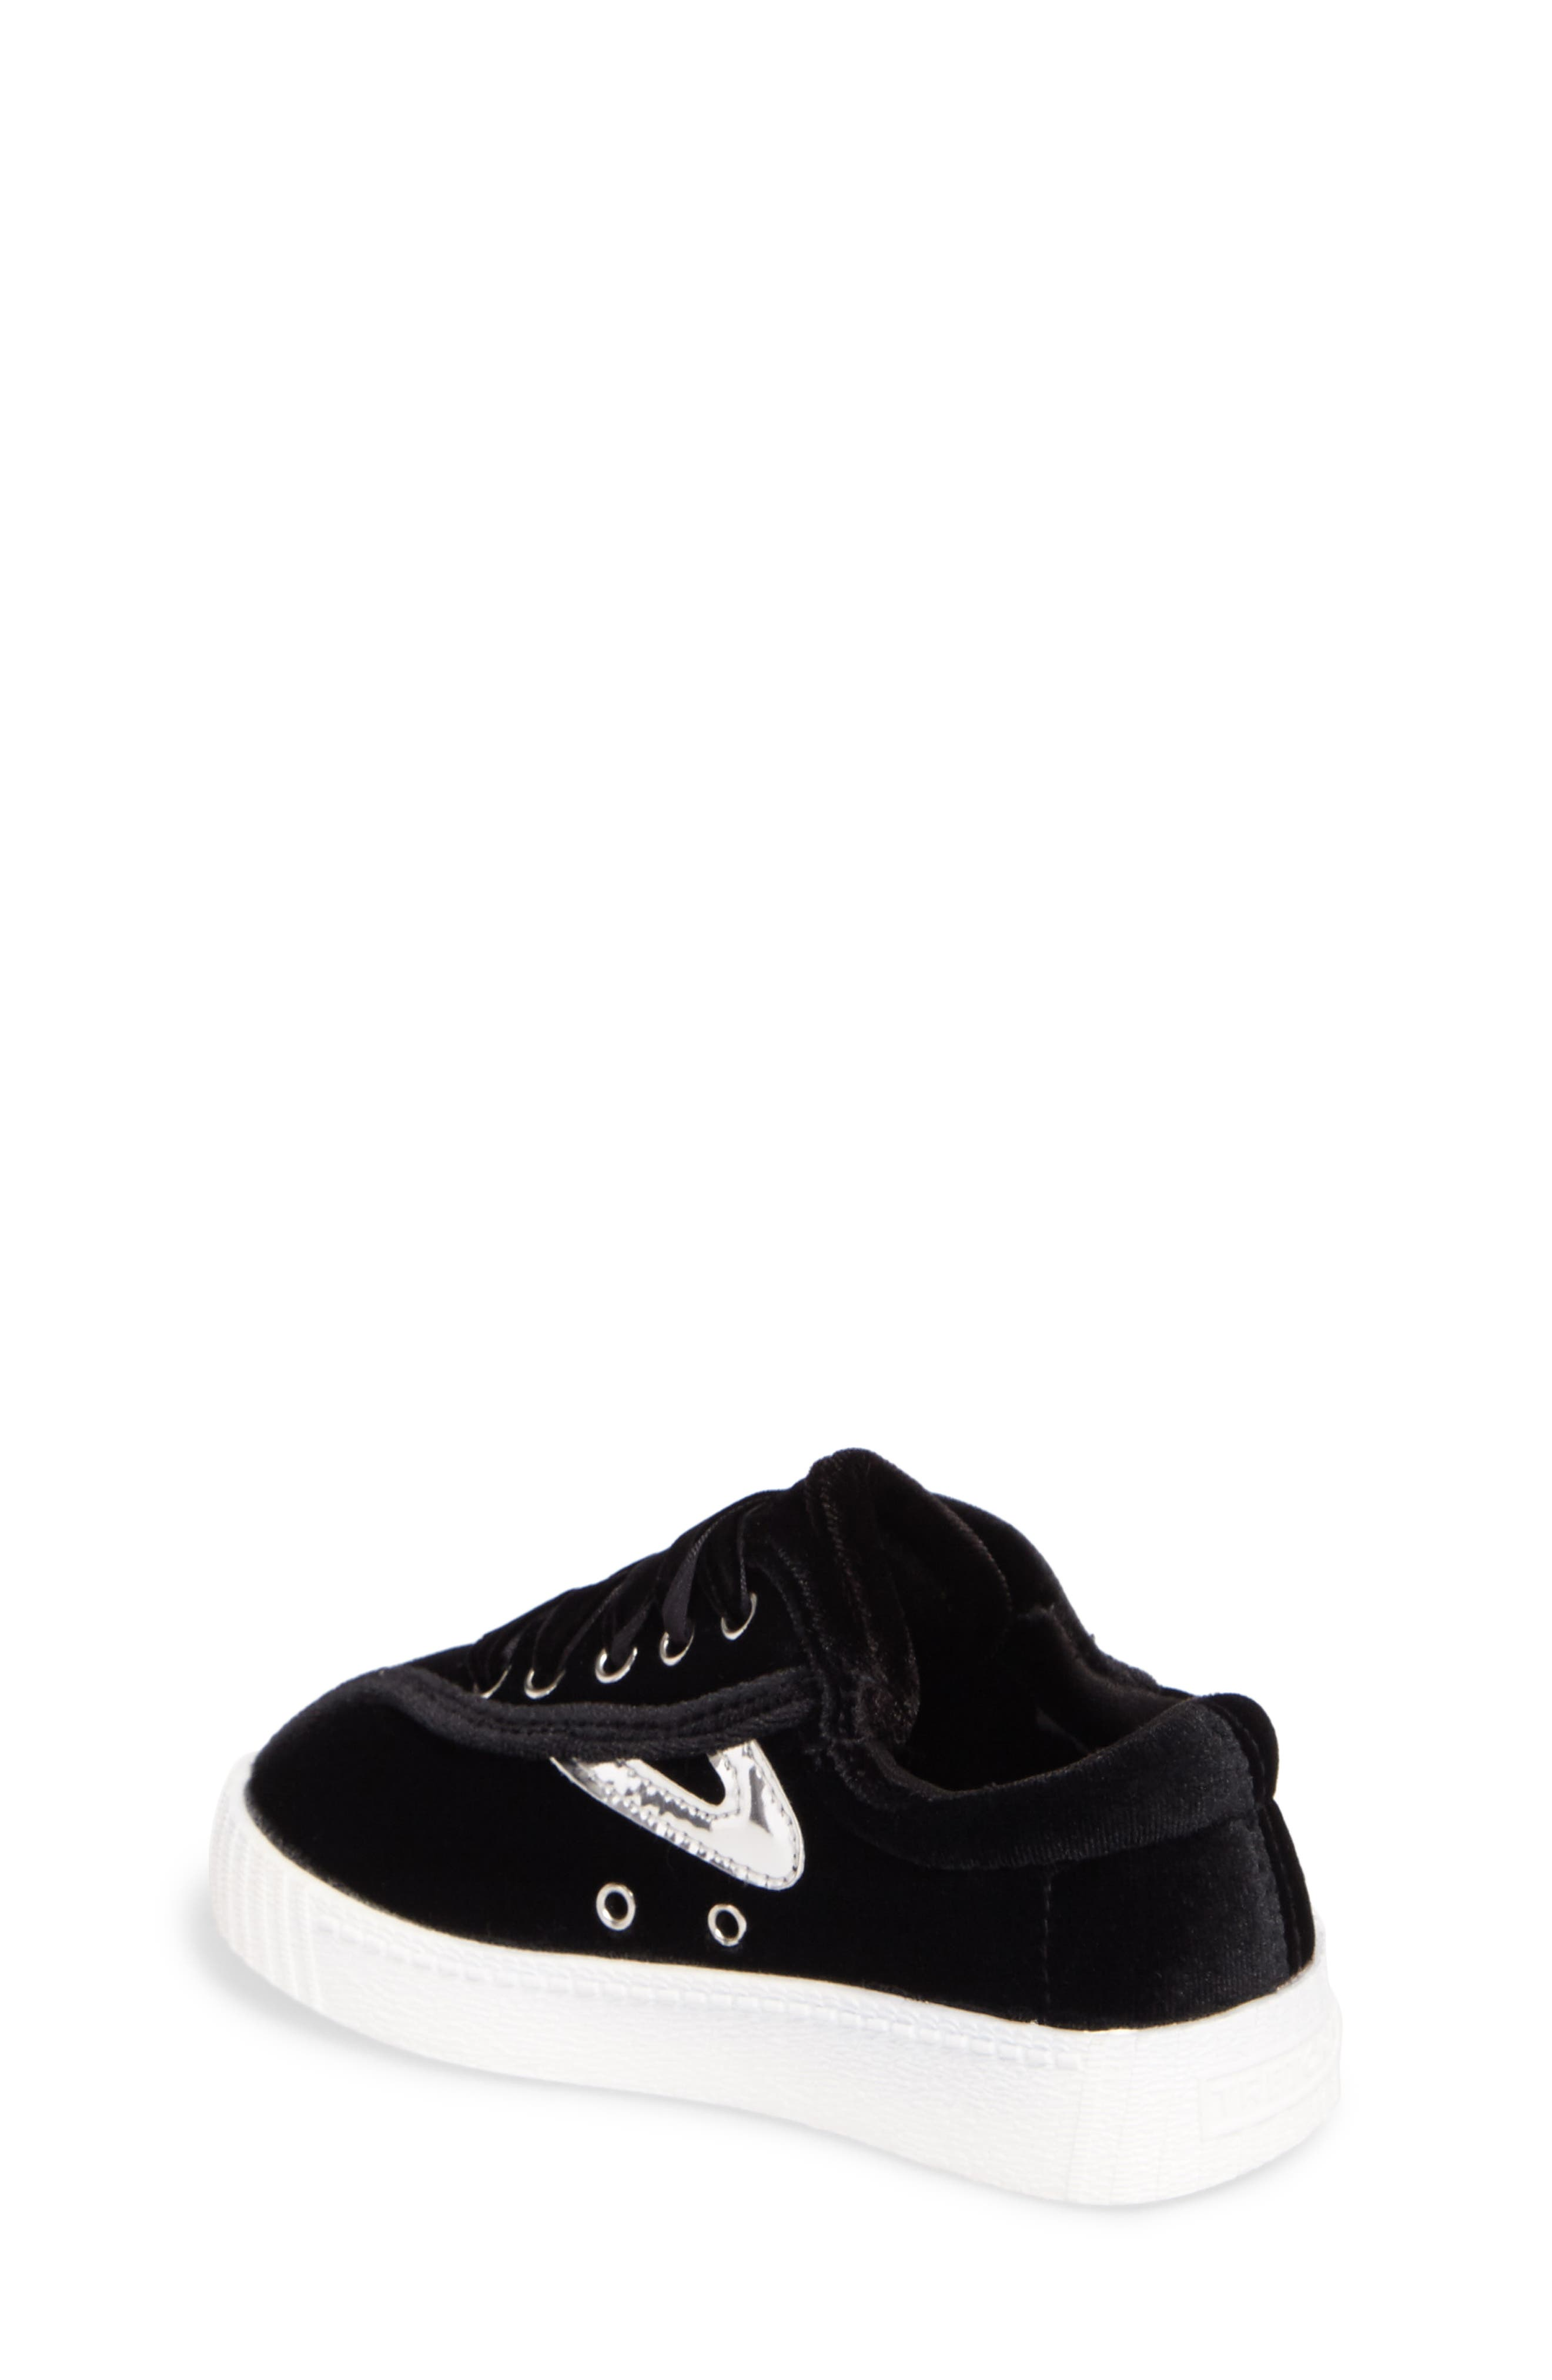 Alternate Image 2  - Tretorn NYLite Velvet Sneaker (Walker, Toddler, Little Kid & Big Kid)